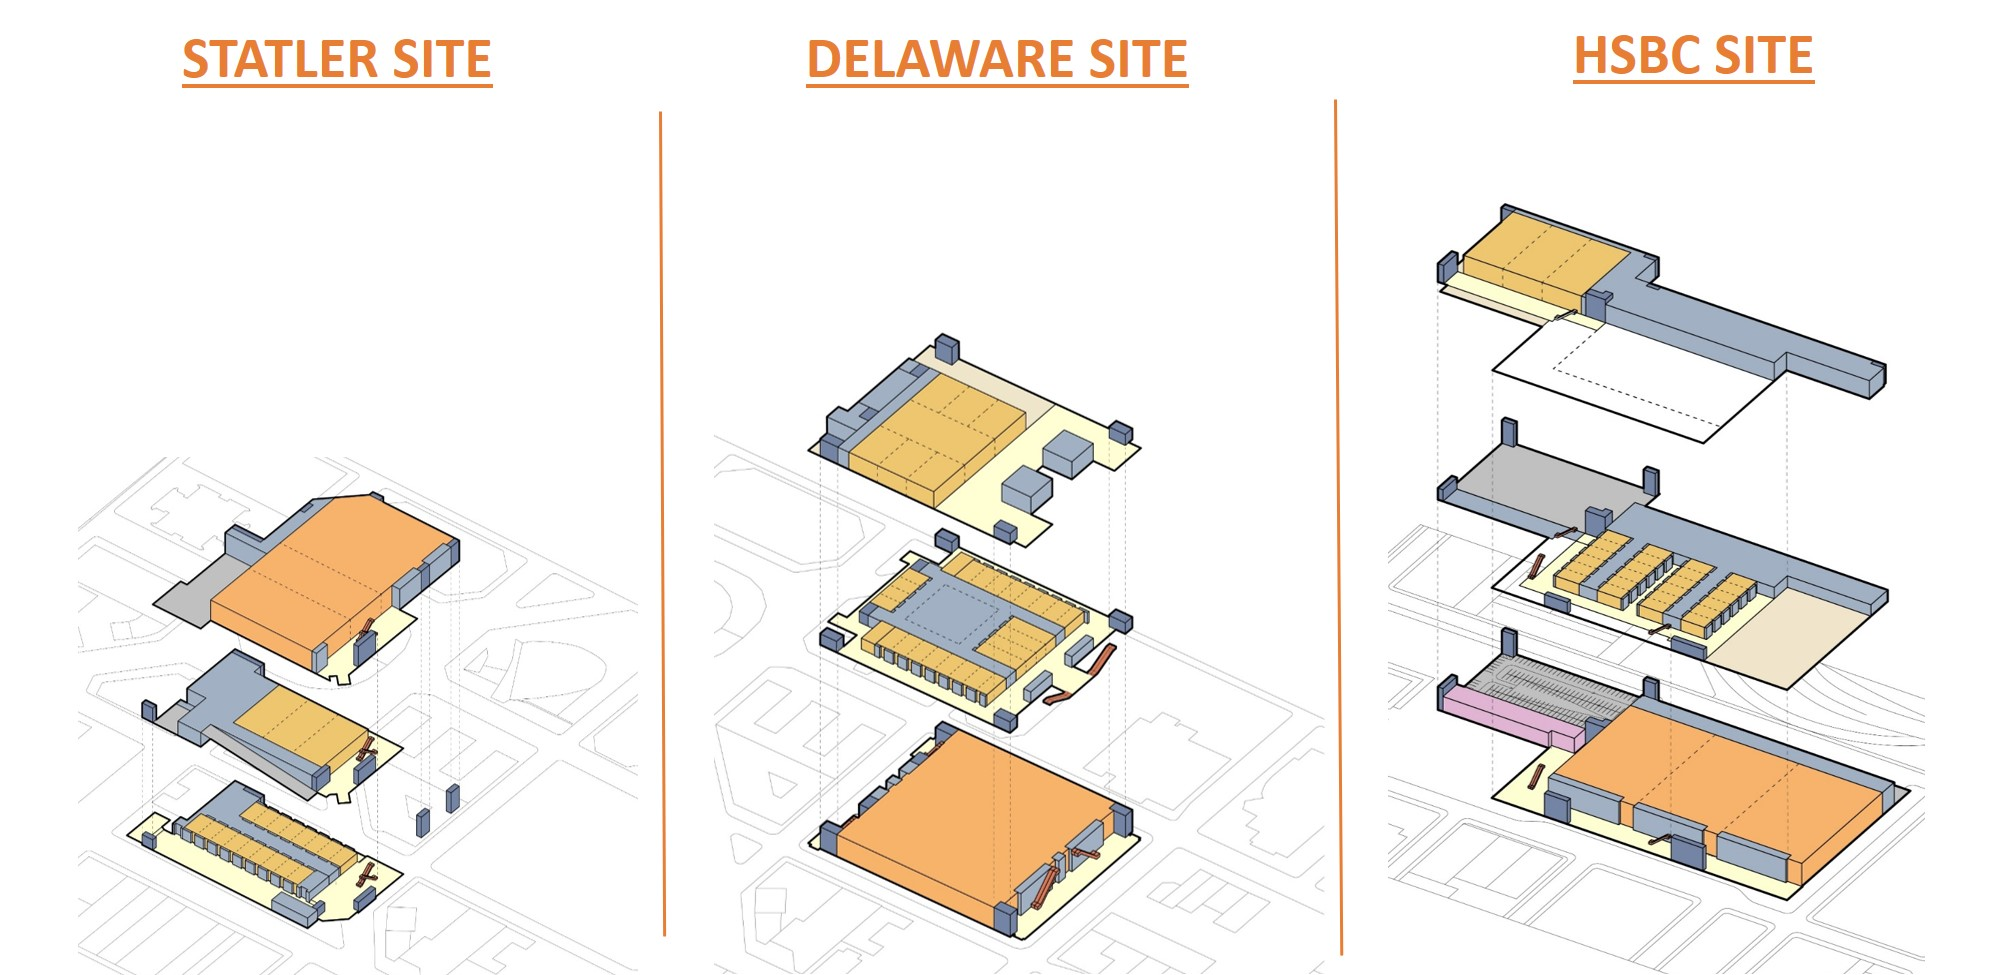 Site Layouts of the Statler, Delaware and HSBC Sites